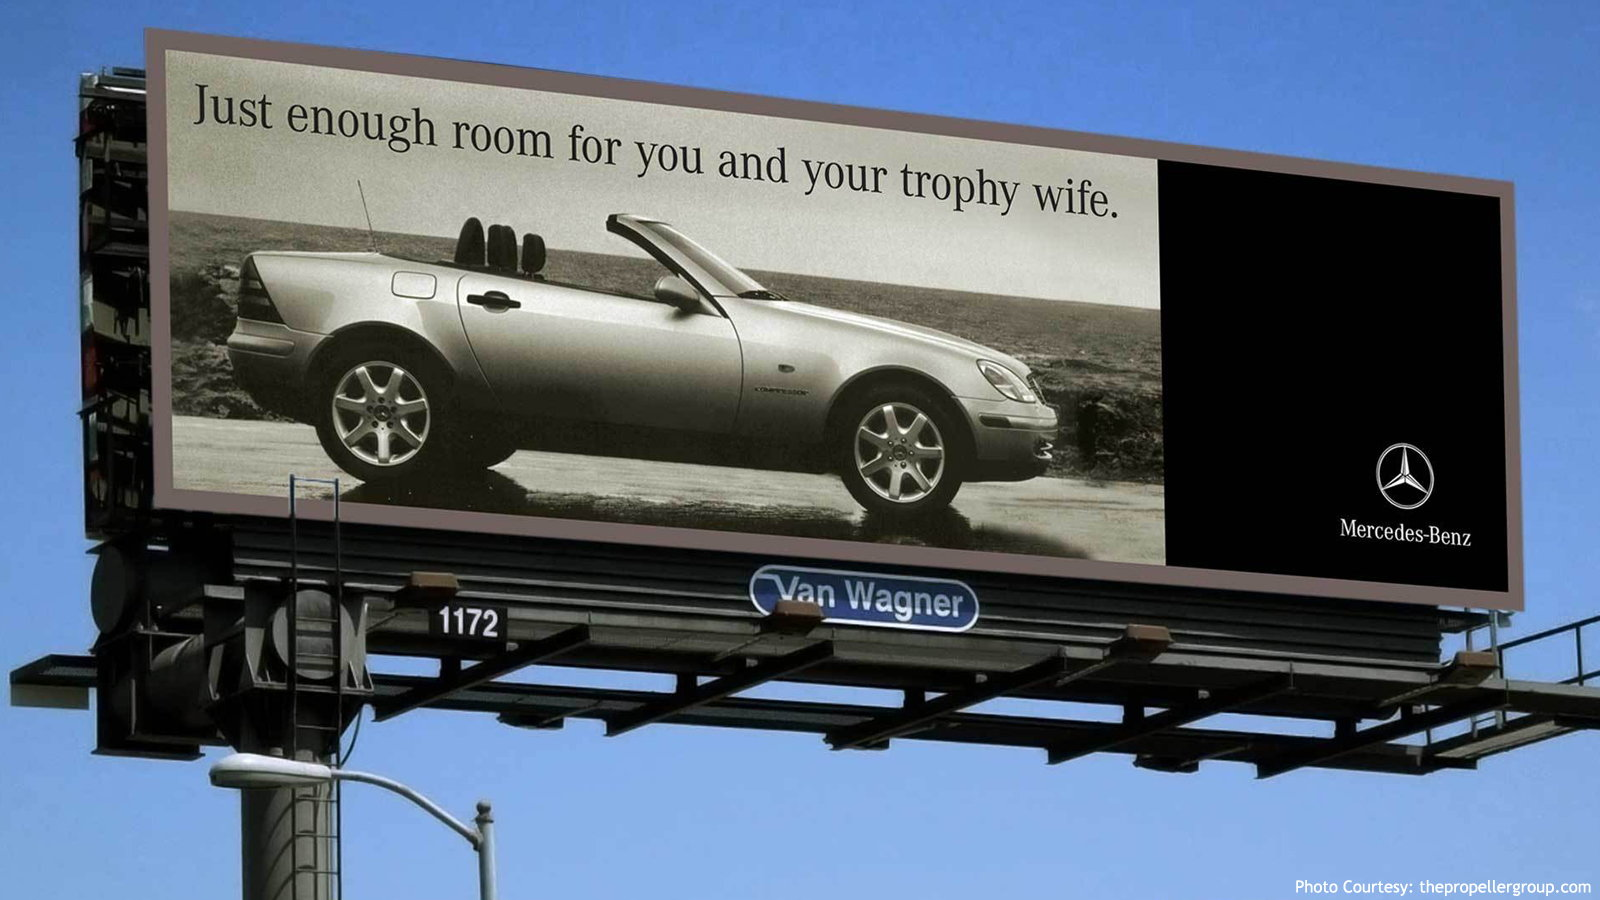 The Trophy-Wife-Mobile